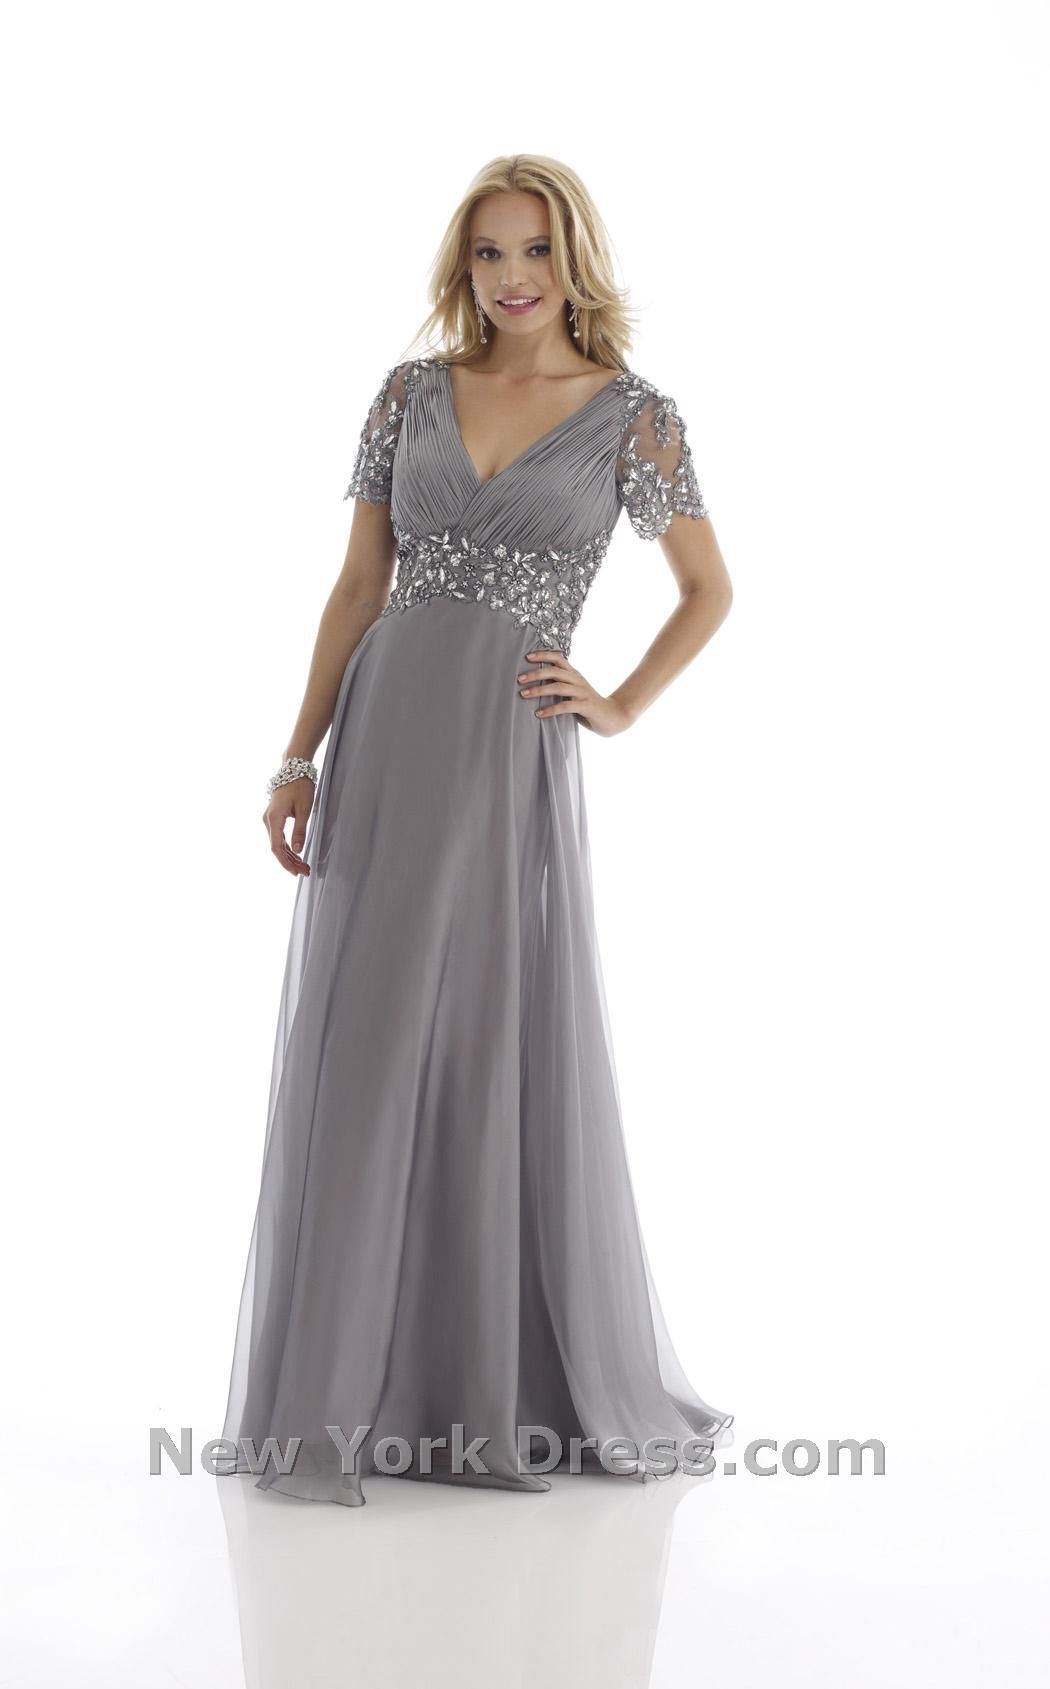 Morrell Maxie 14167 Dress - NewYorkDress.com | Mother of the groom ...